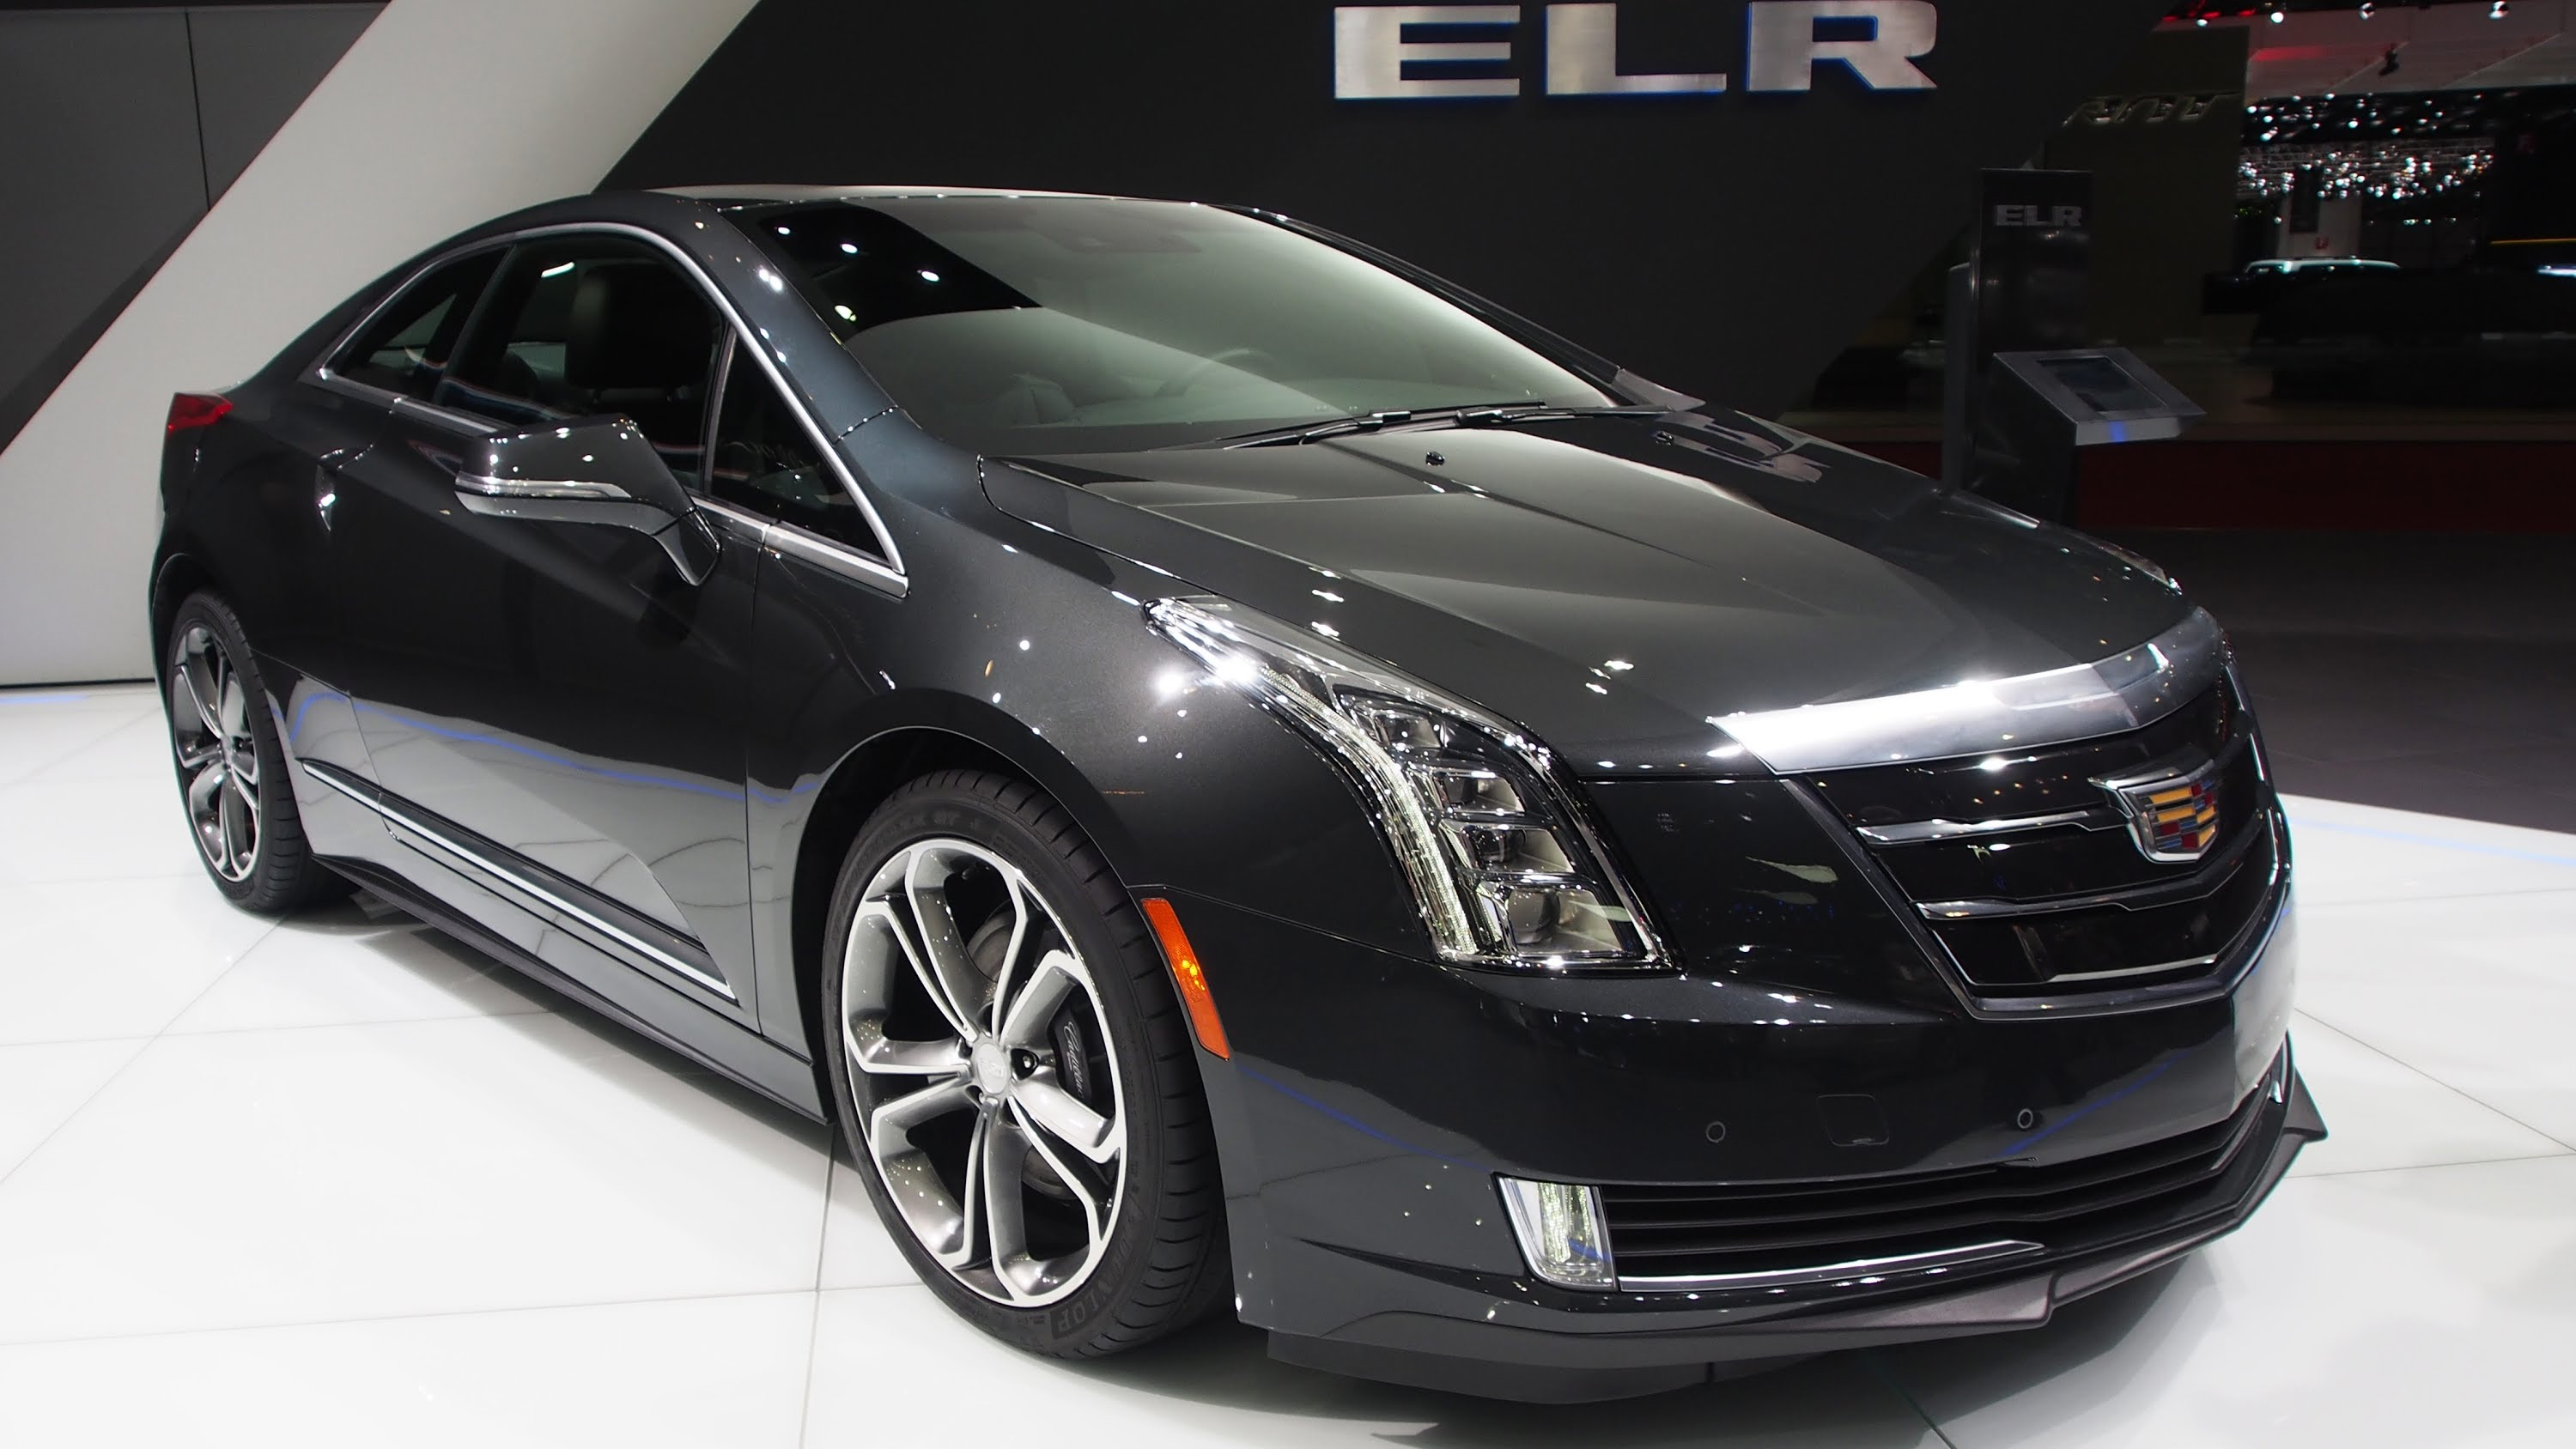 Cadillac ELR I Restyling 2015 - 2016 Coupe #3